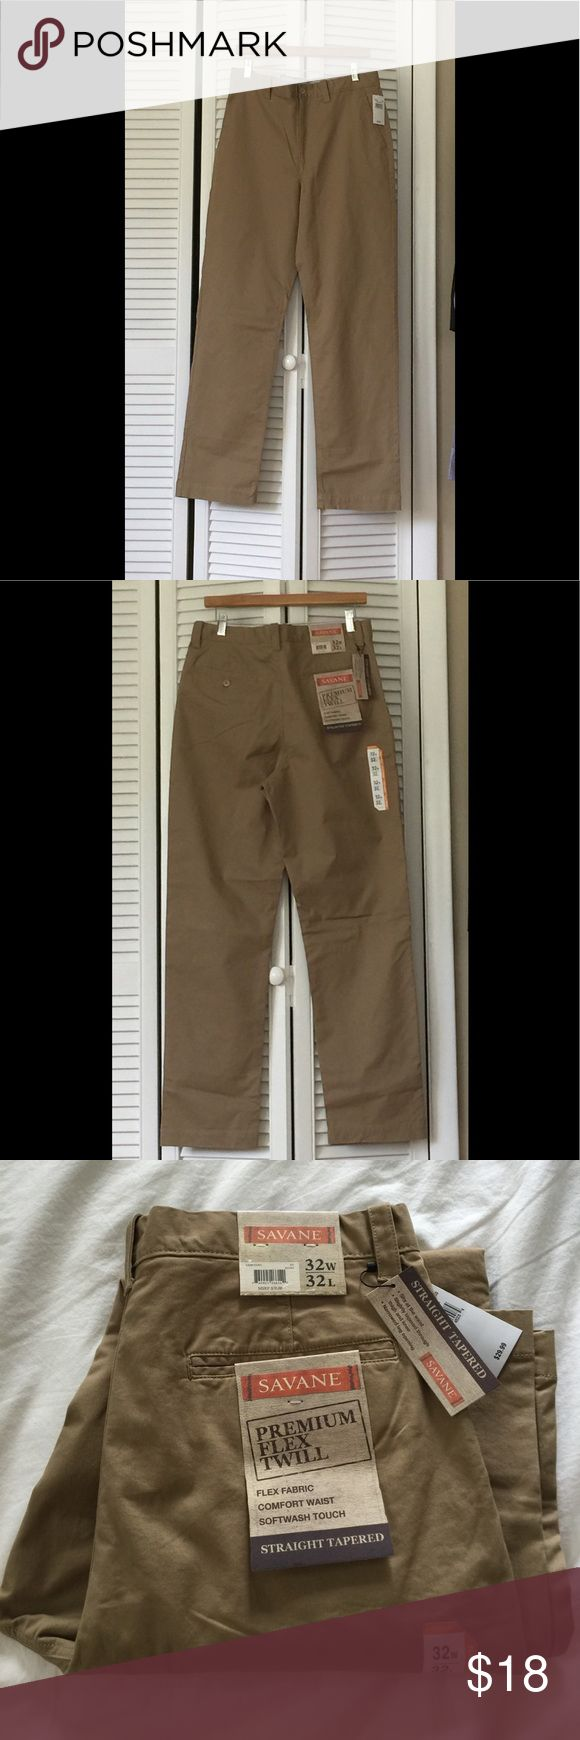 NWT khaki pants 32W, 32L NEW with tags khaki pants Men 32W and 32L. Flat front. Very comfortable fabric. Goes with everything Savane Pants Chinos & Khakis